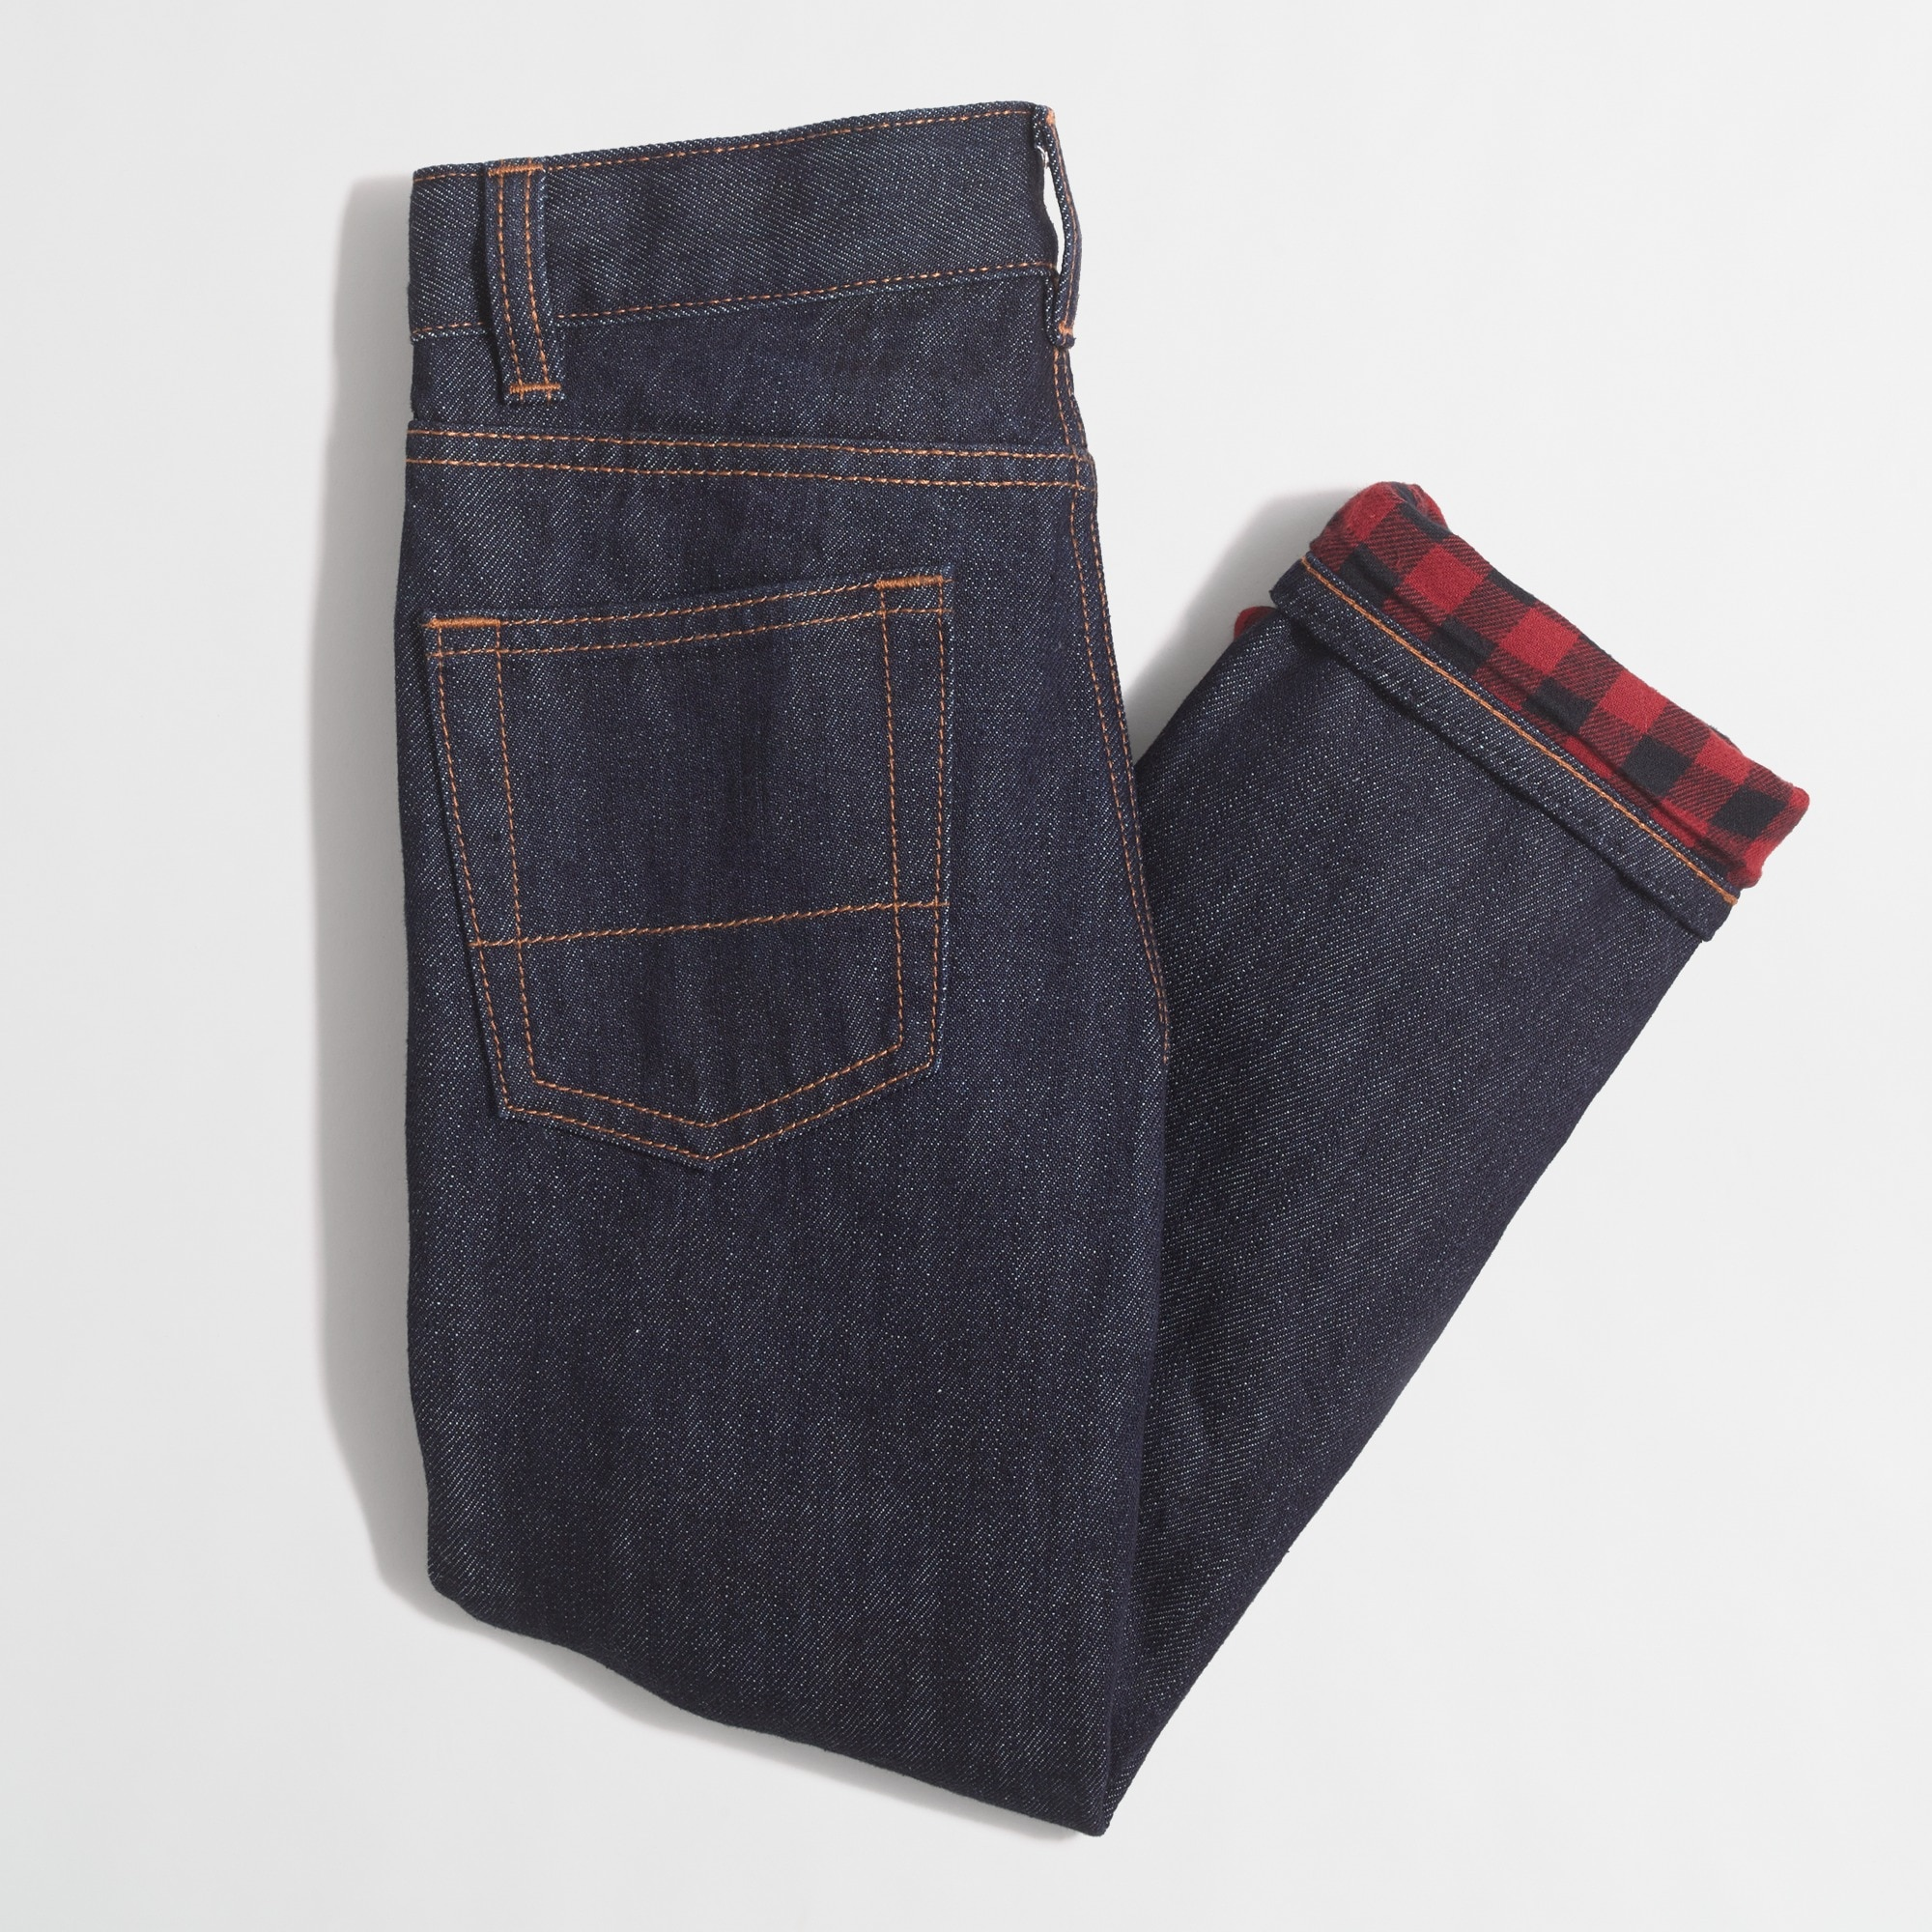 Boys' flannel-lined jeans